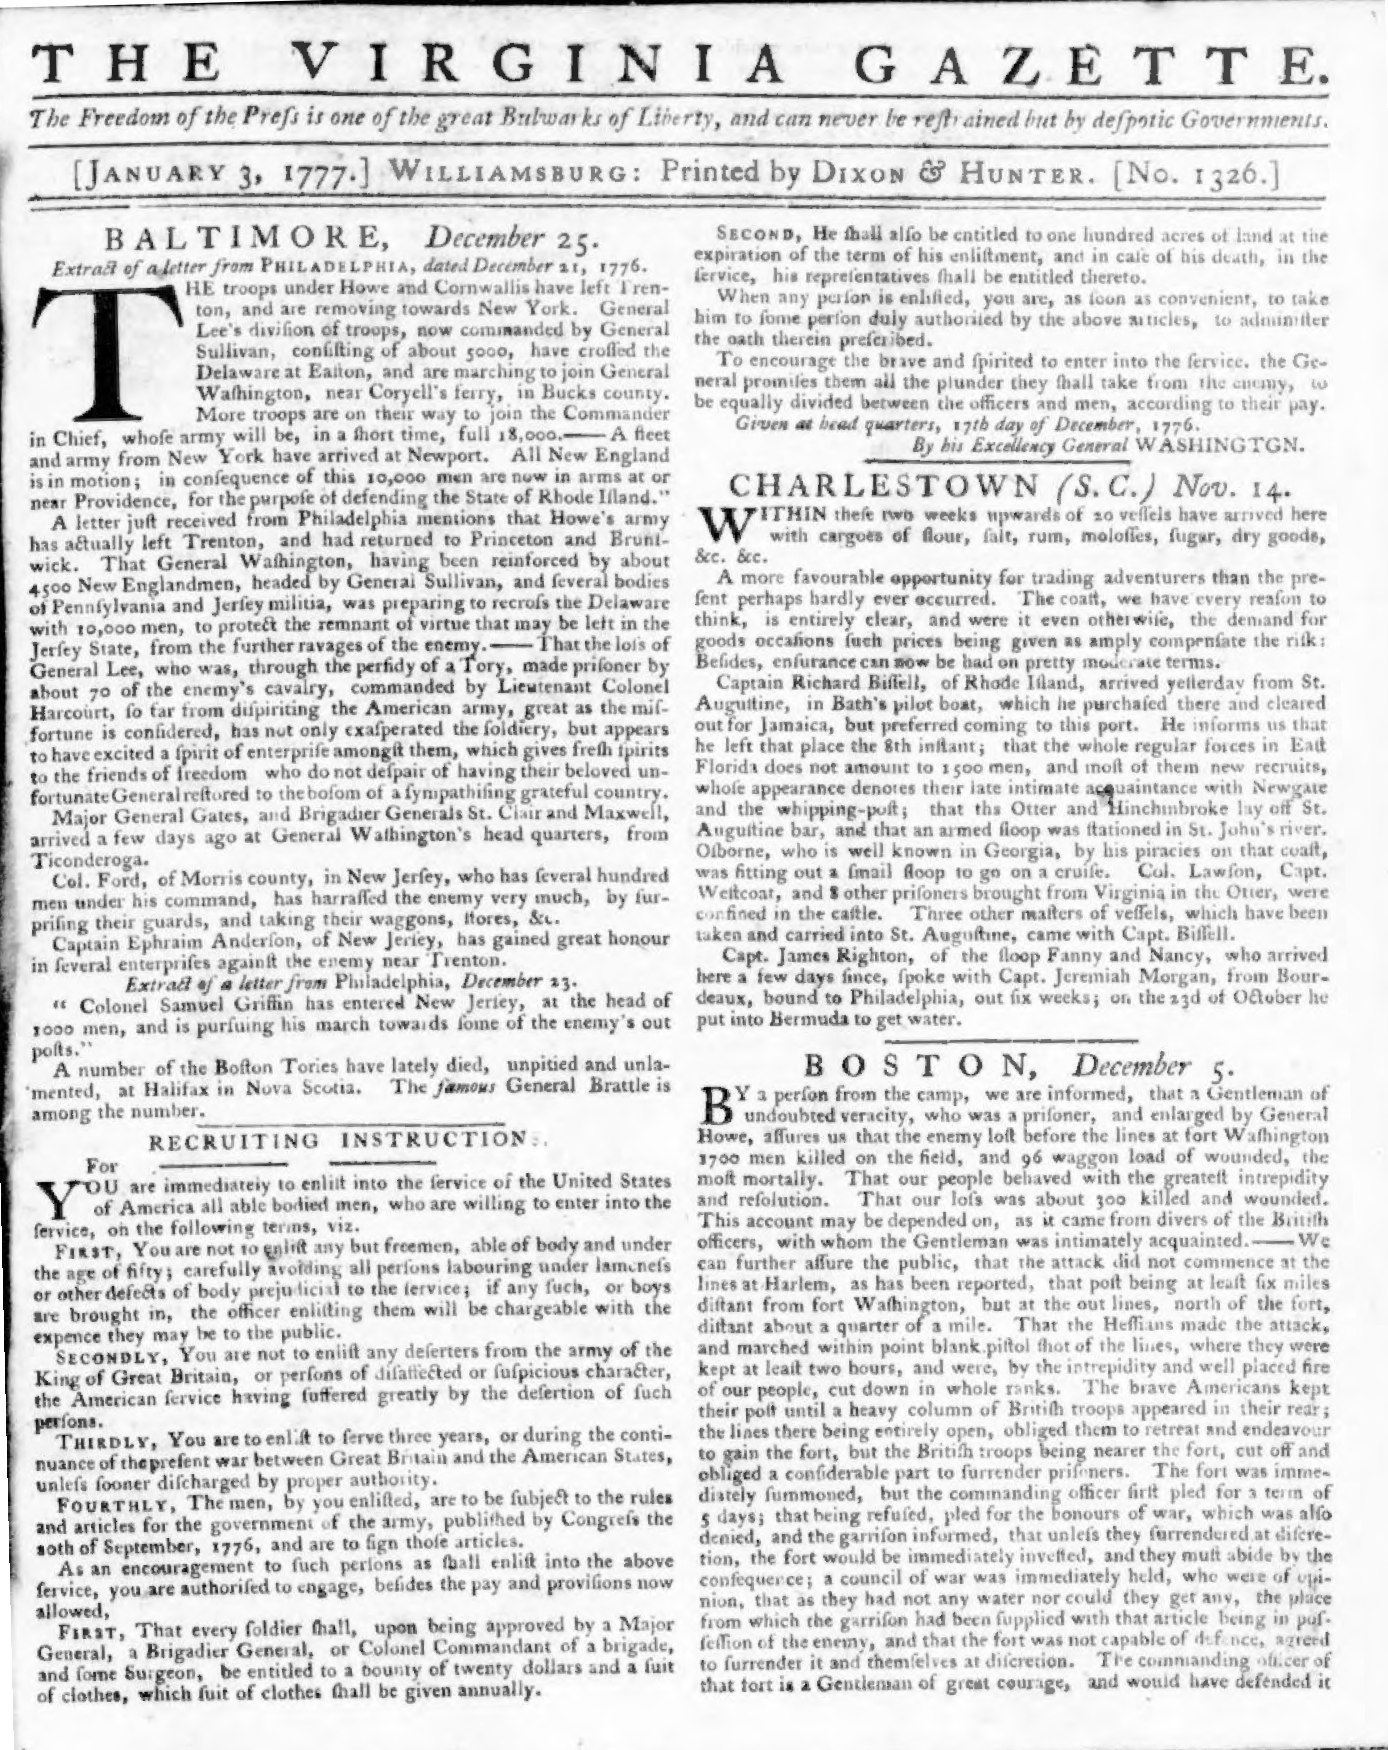 General-George-Washington-Recruiting-Instructions-for-the-Continental-Army-in-the-Virginia-Gazette-Newspaper-January-3-1777